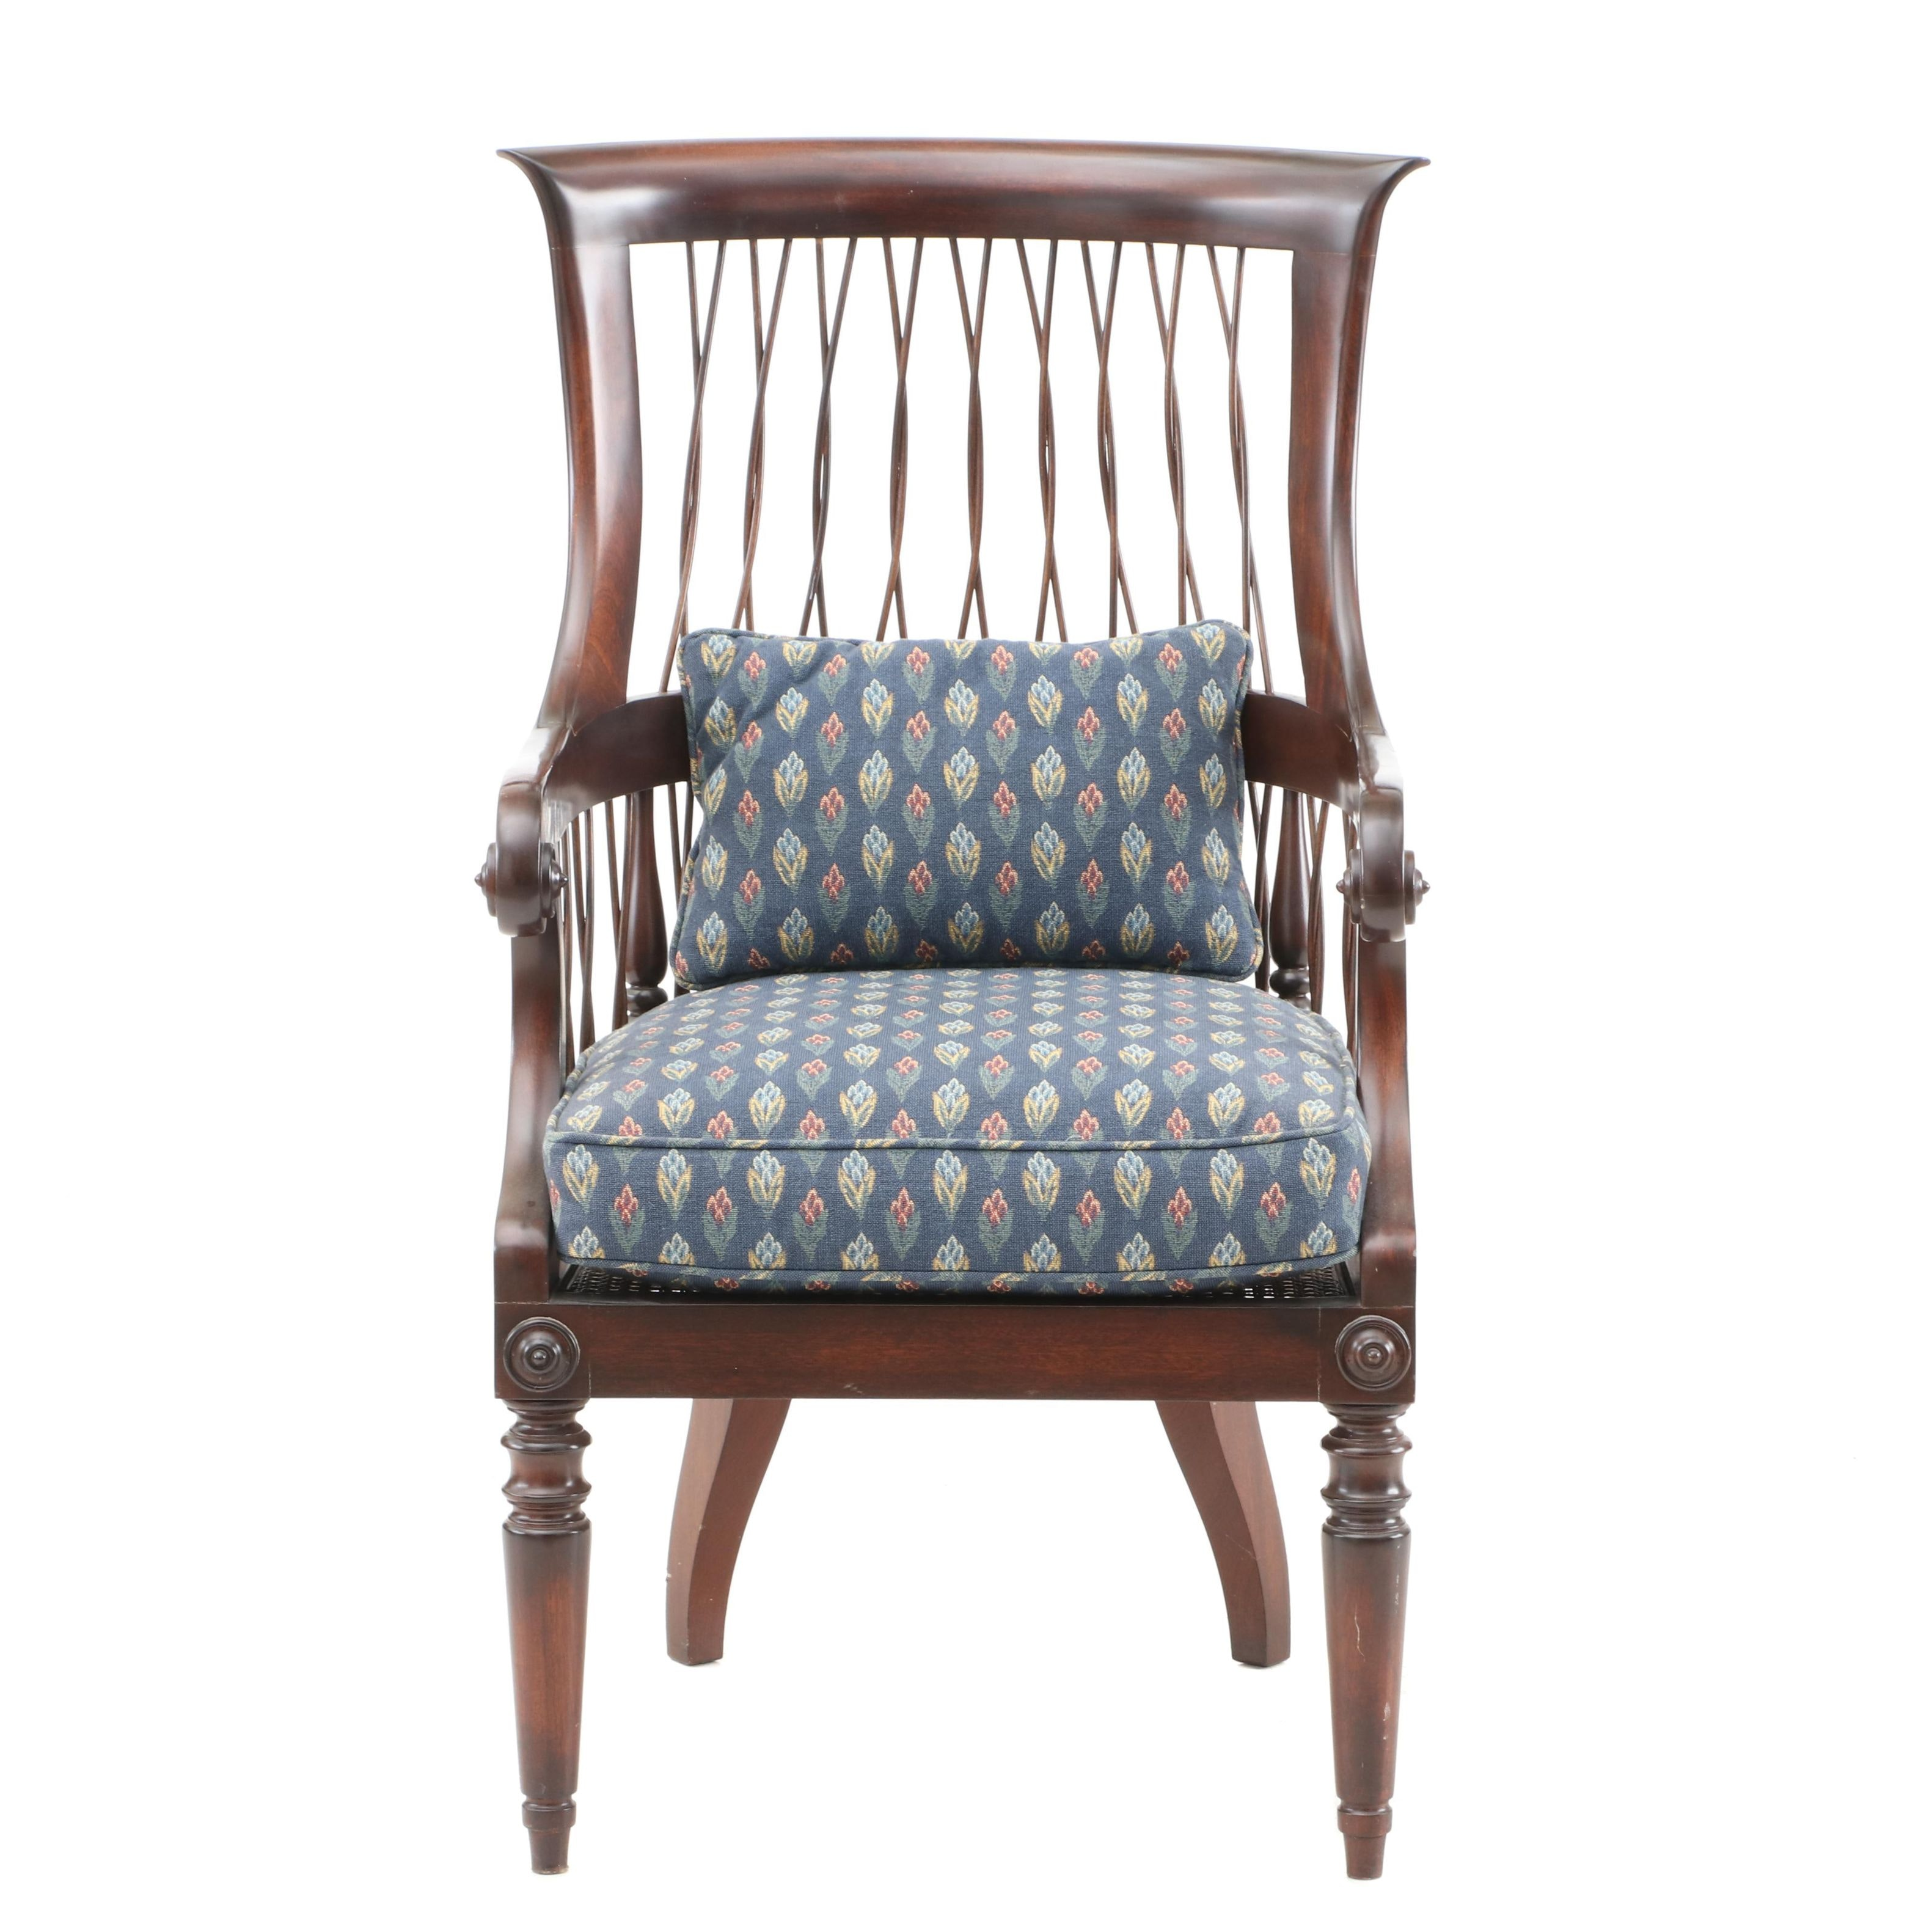 Contemporary Mahogany Finish Cane Seat Armchair